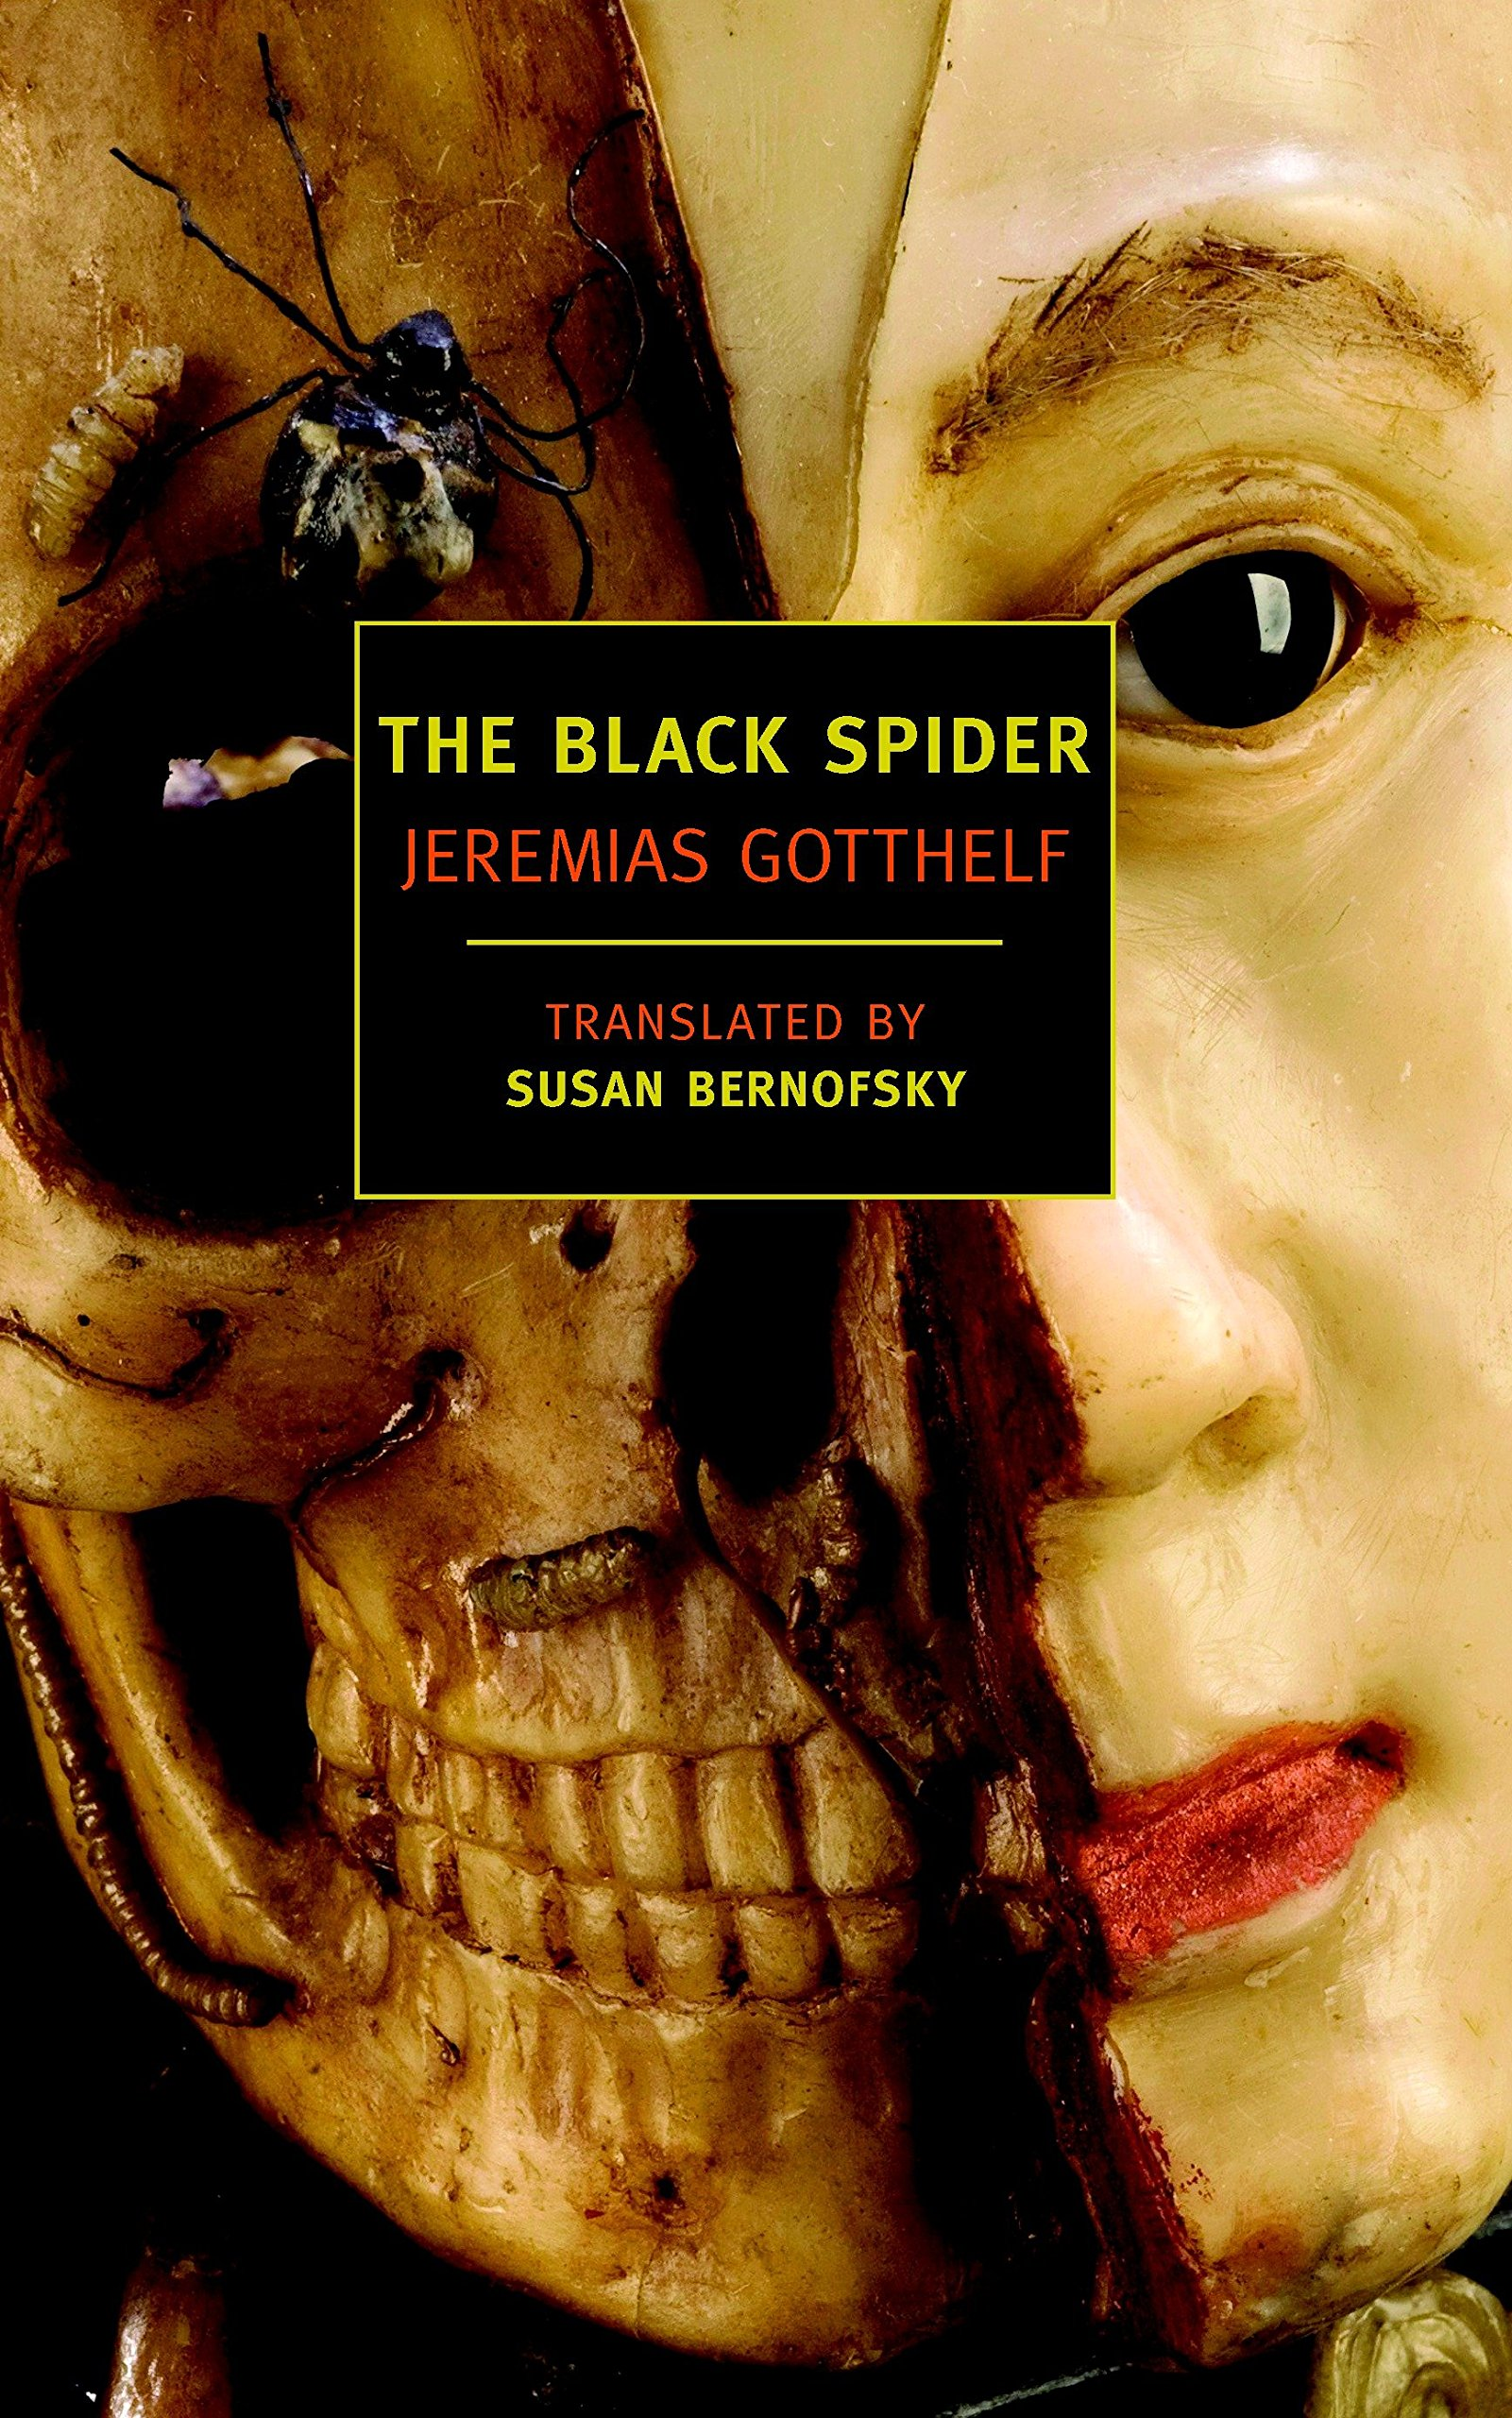 Amazon.com: The Black Spider (New York Review Books Classics)  (9781590176689): Jeremias Gotthelf, Susan Bernofsky: Books